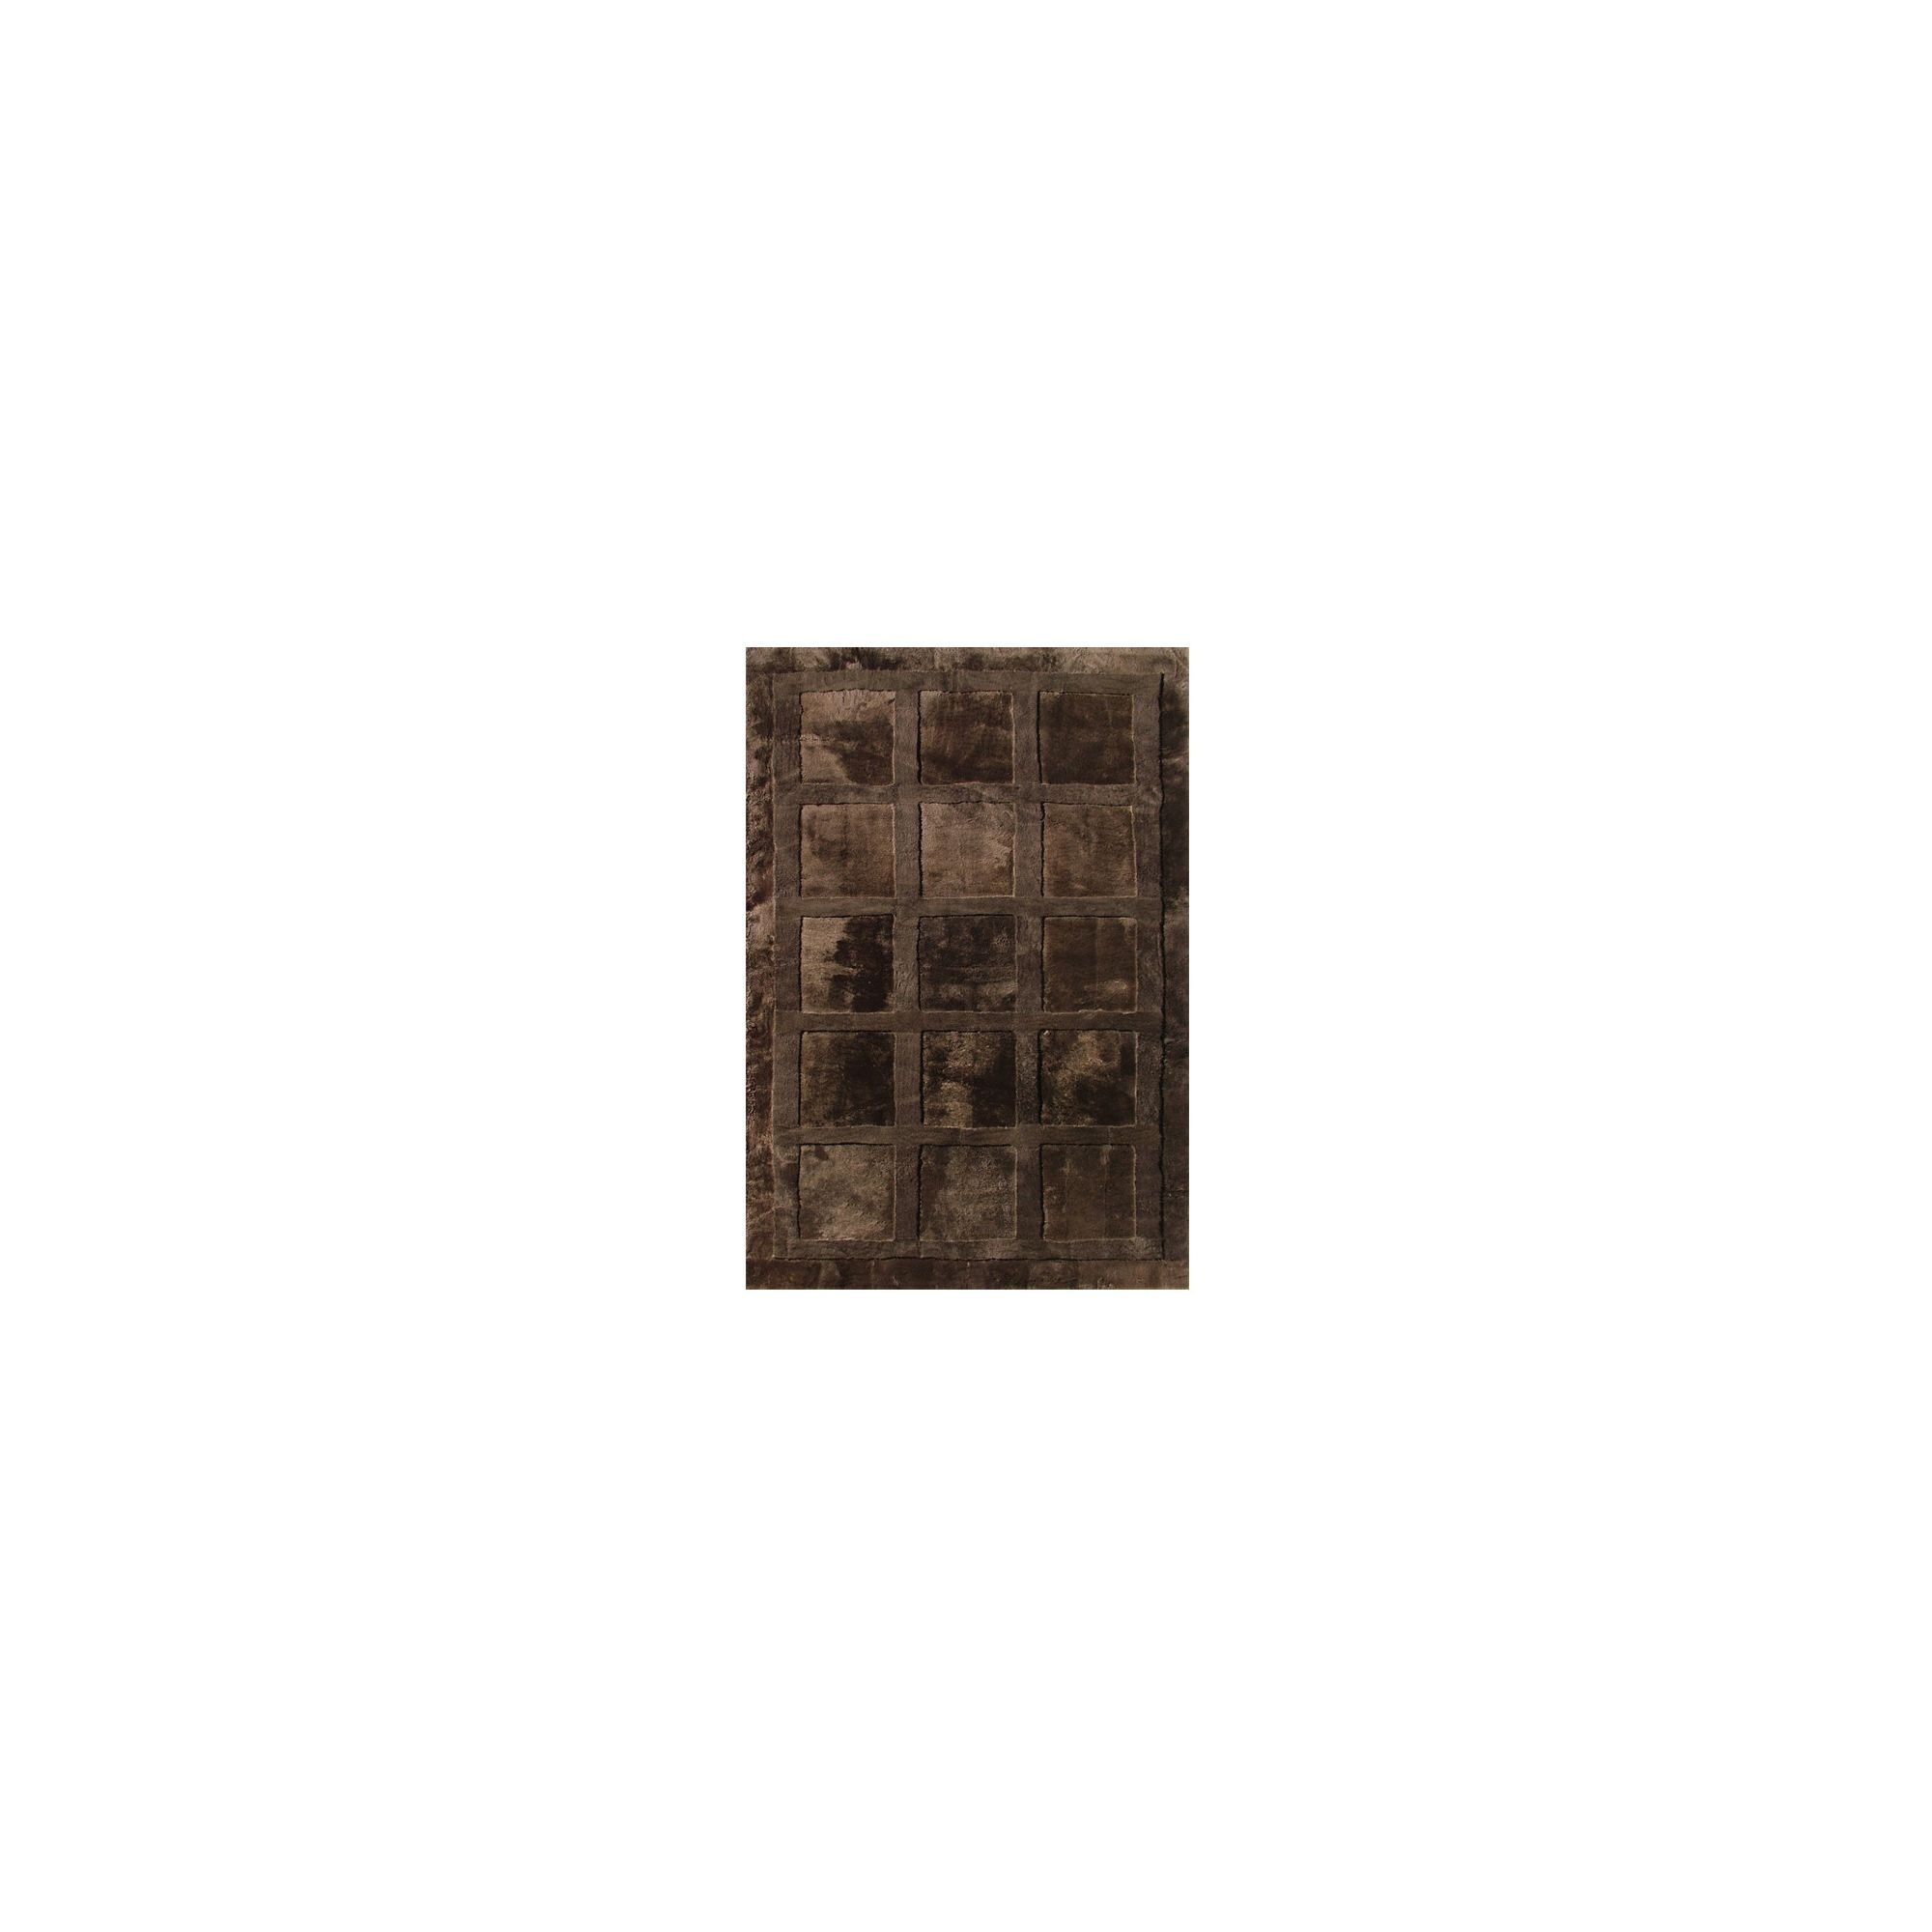 Bowron Sheepskin Shortwool Design Squares Rug - 350cm H x 250cm W x 1cm D at Tesco Direct